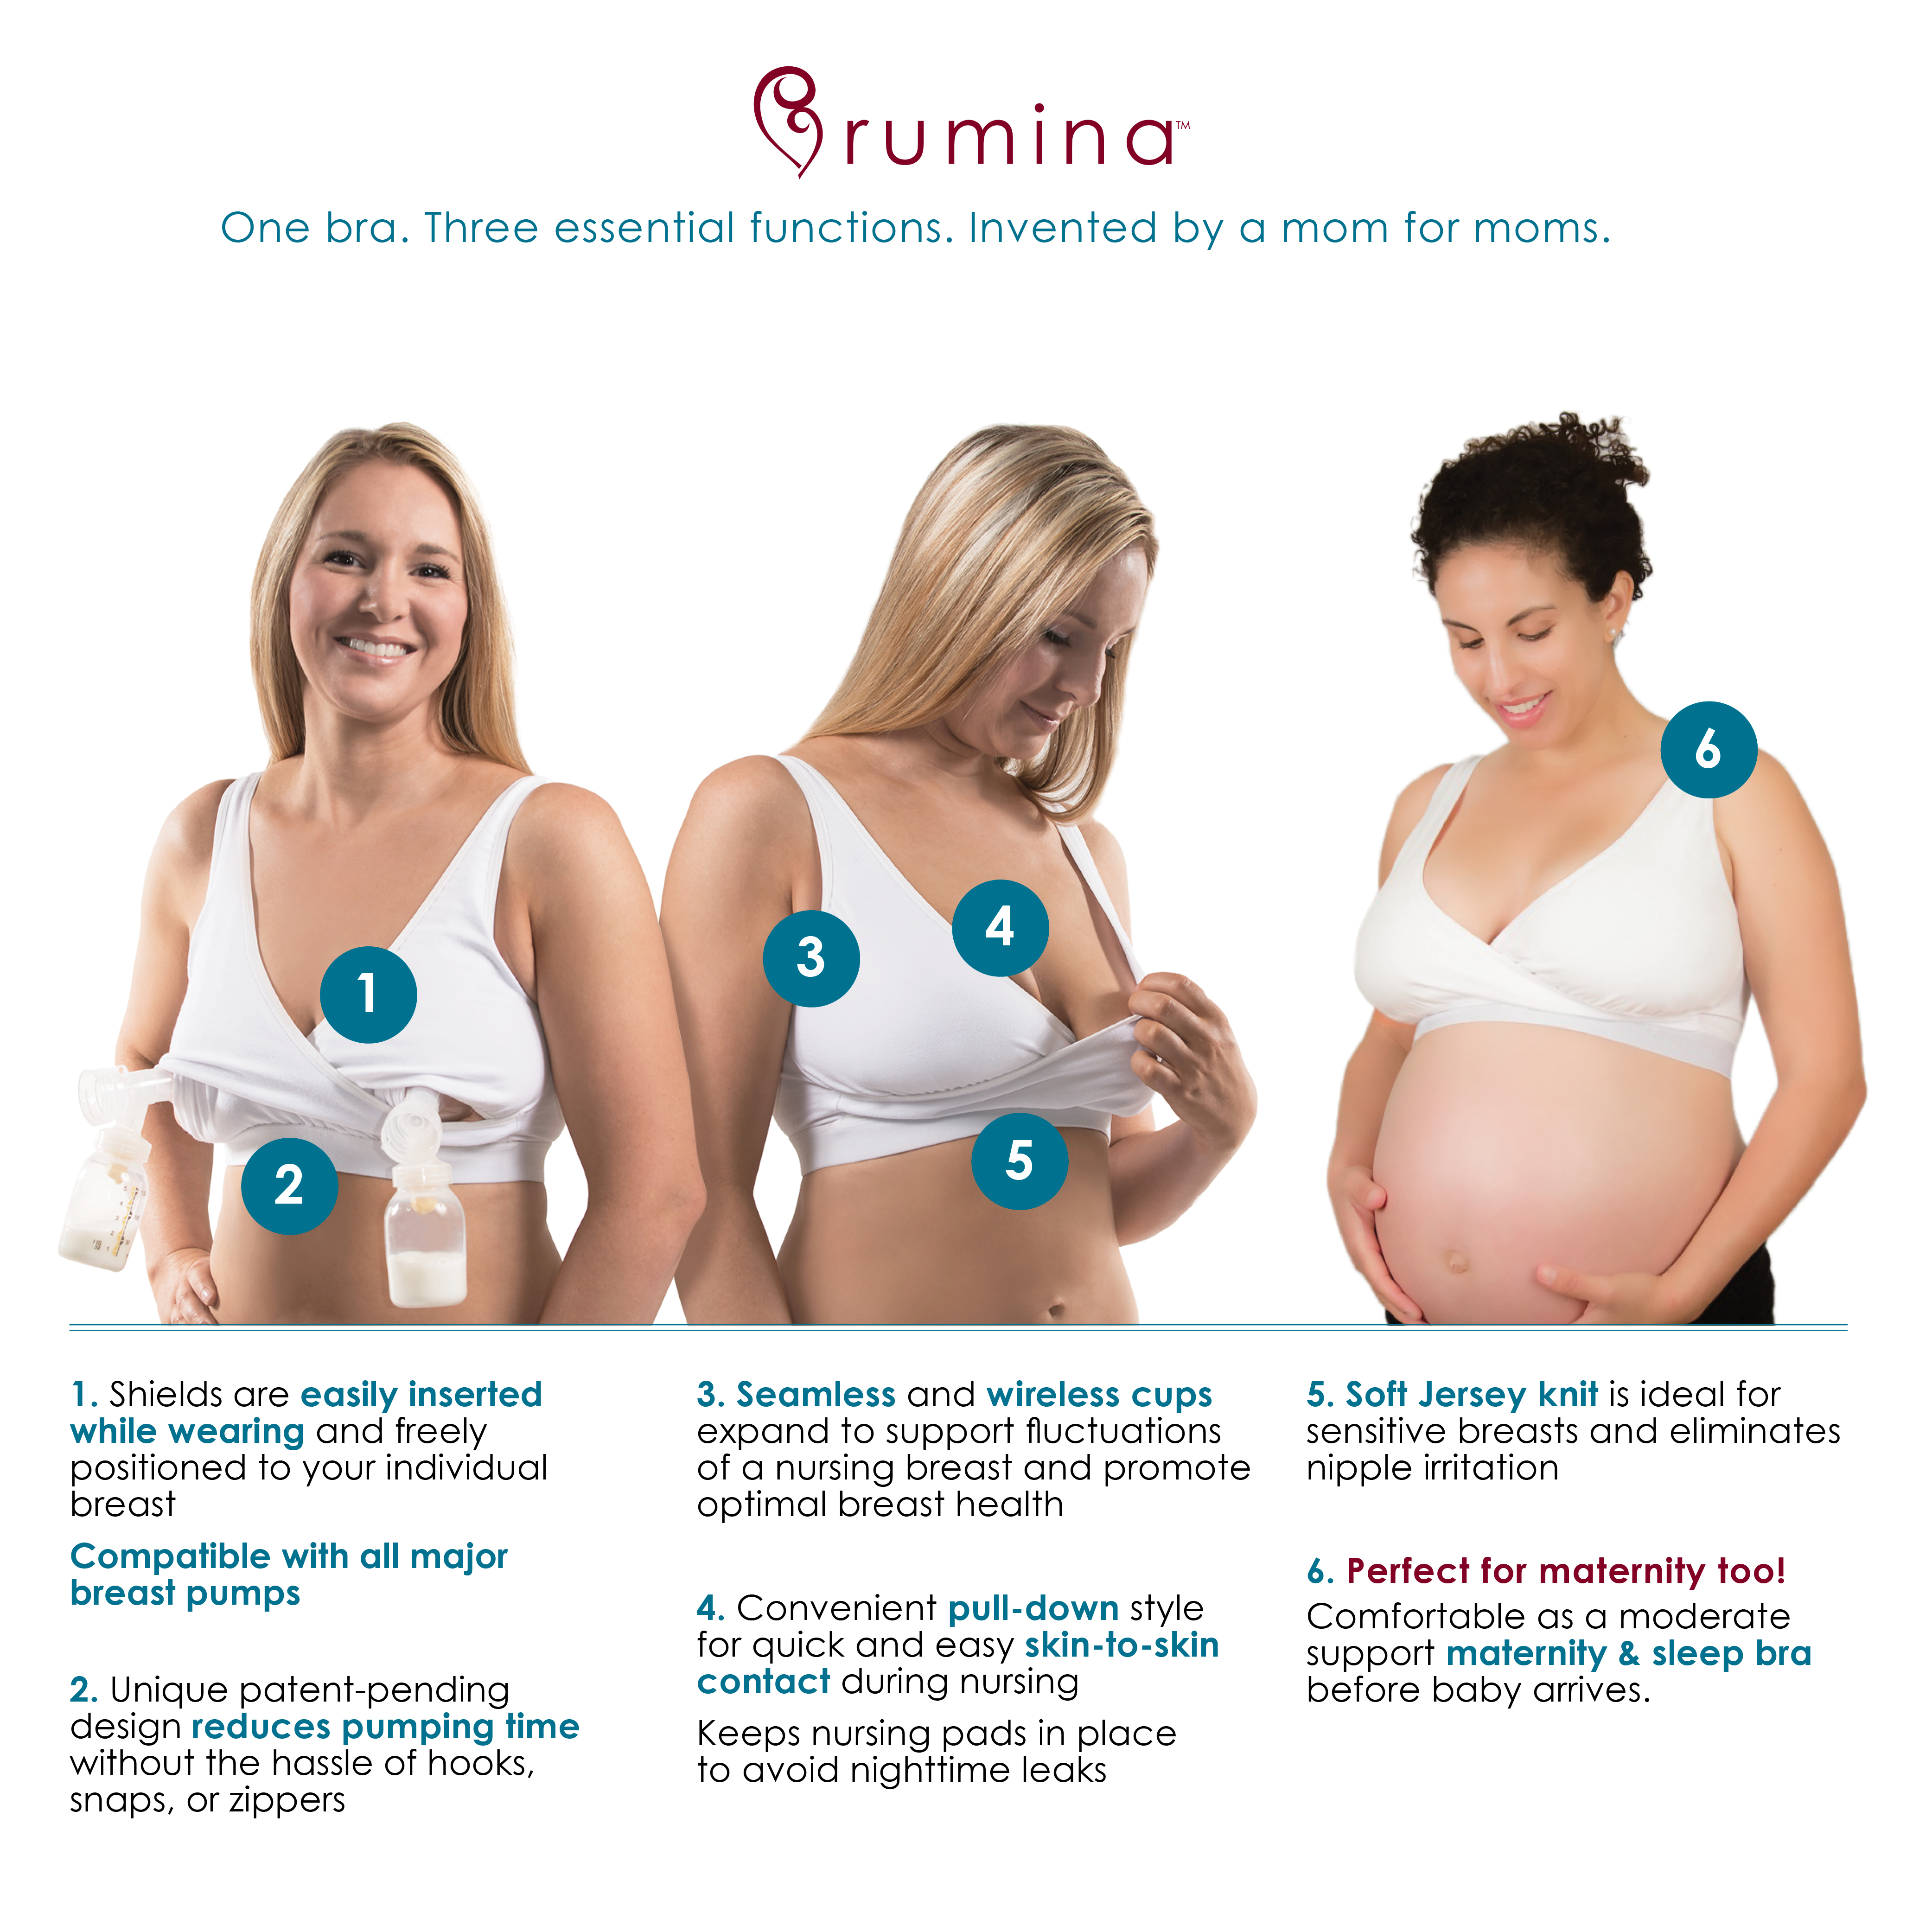 rumina-pump-and-nurse-relaxed-crossover-bra-works